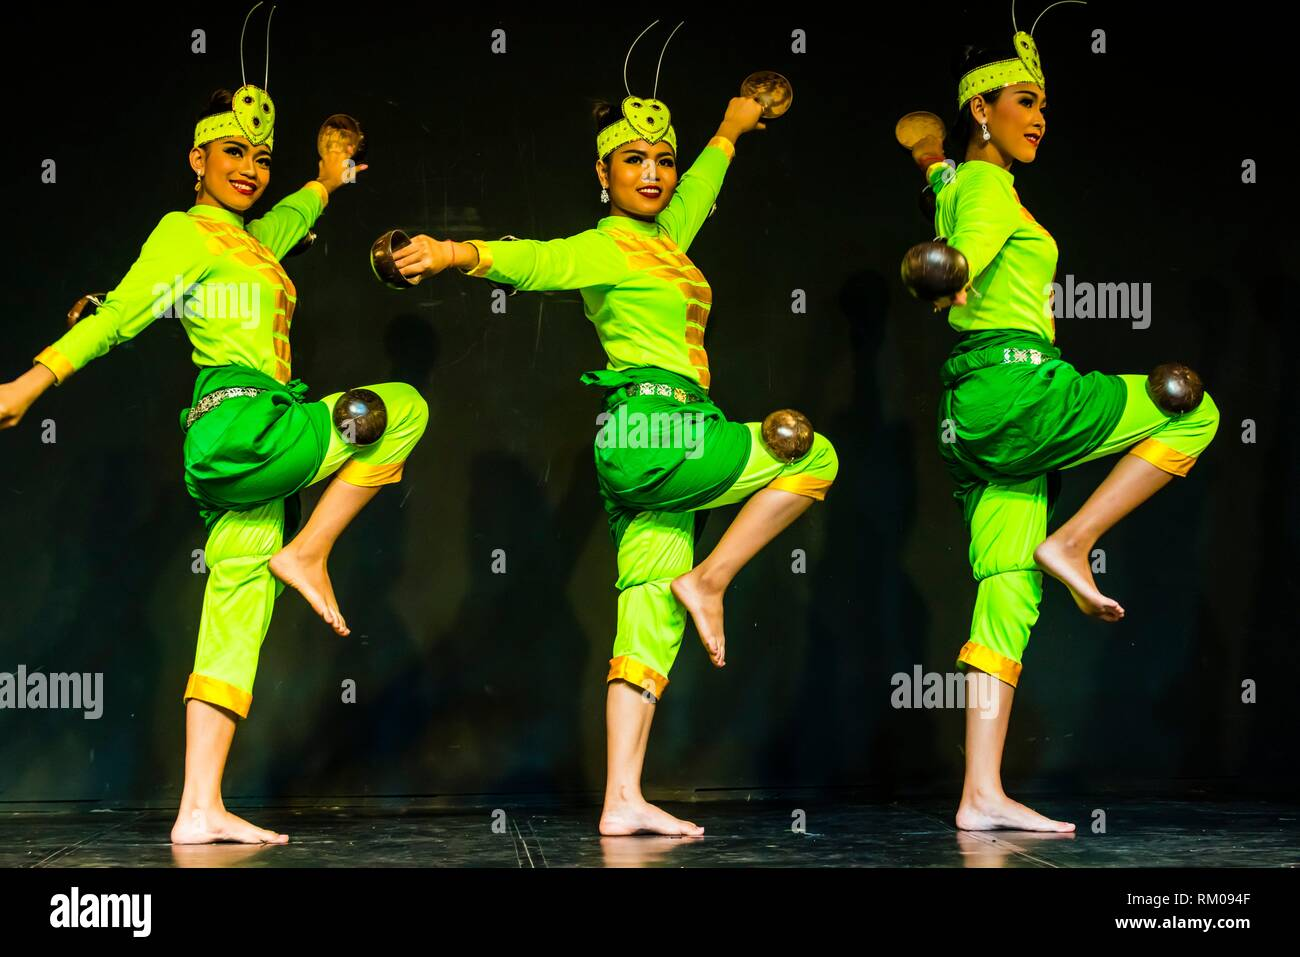 Praying mantis dance (Robam Kandob Ses). The gestures largely imitate the praying mantis and costumes are the color of the insect. Traditional dance Stock Photo